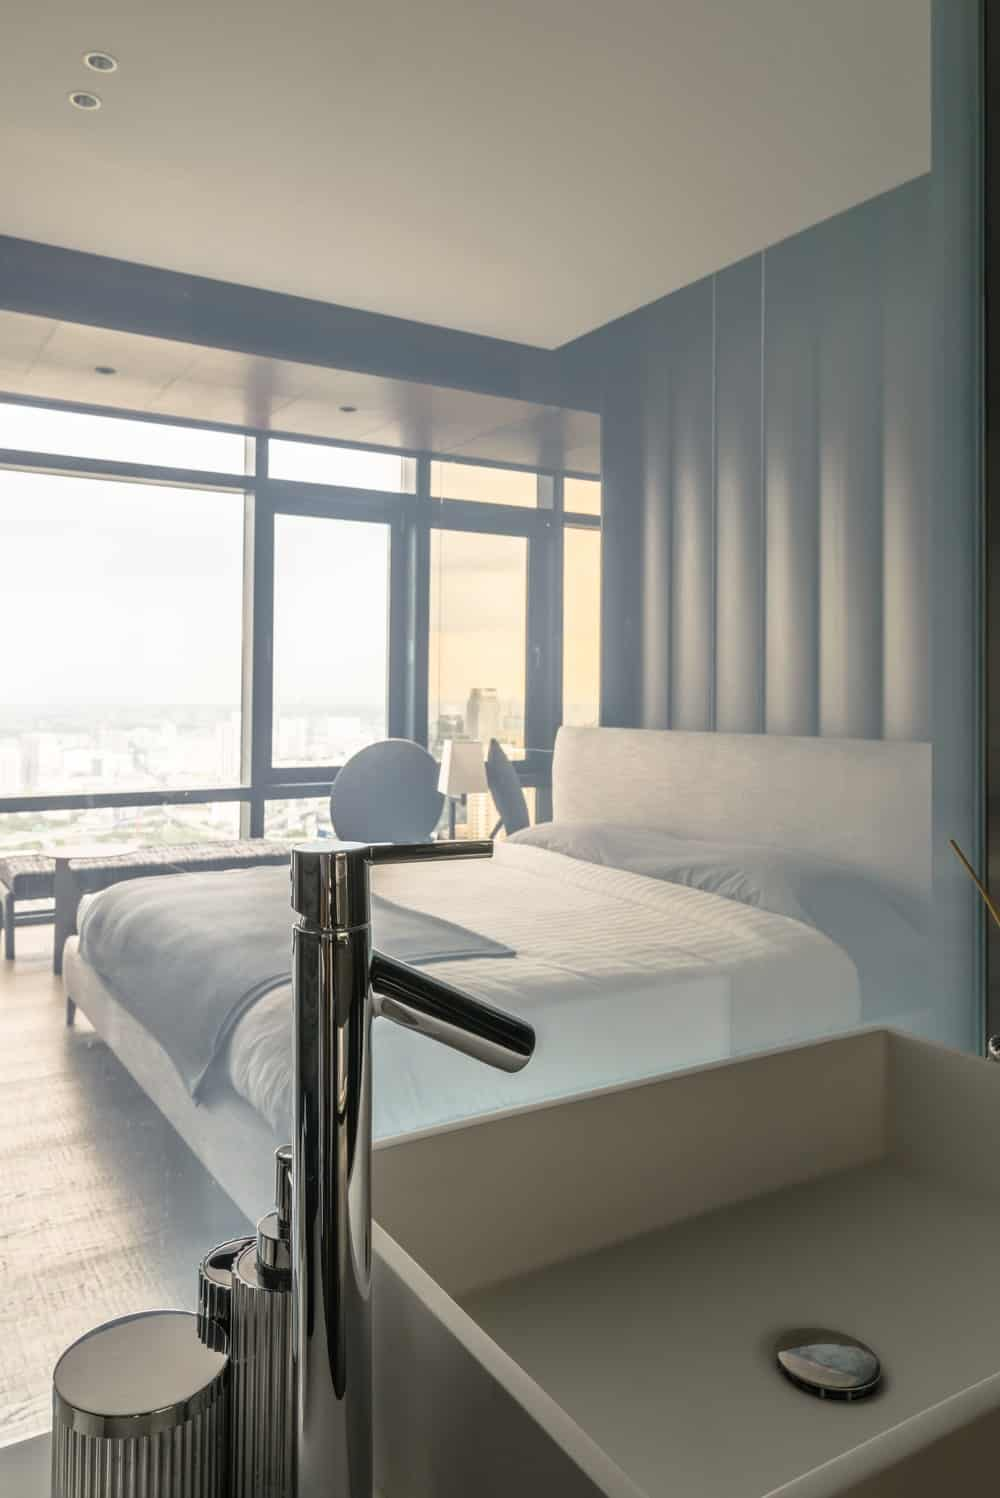 The bathroom is separated from the bedroom by only a glass panel that can be see-through or opaque.